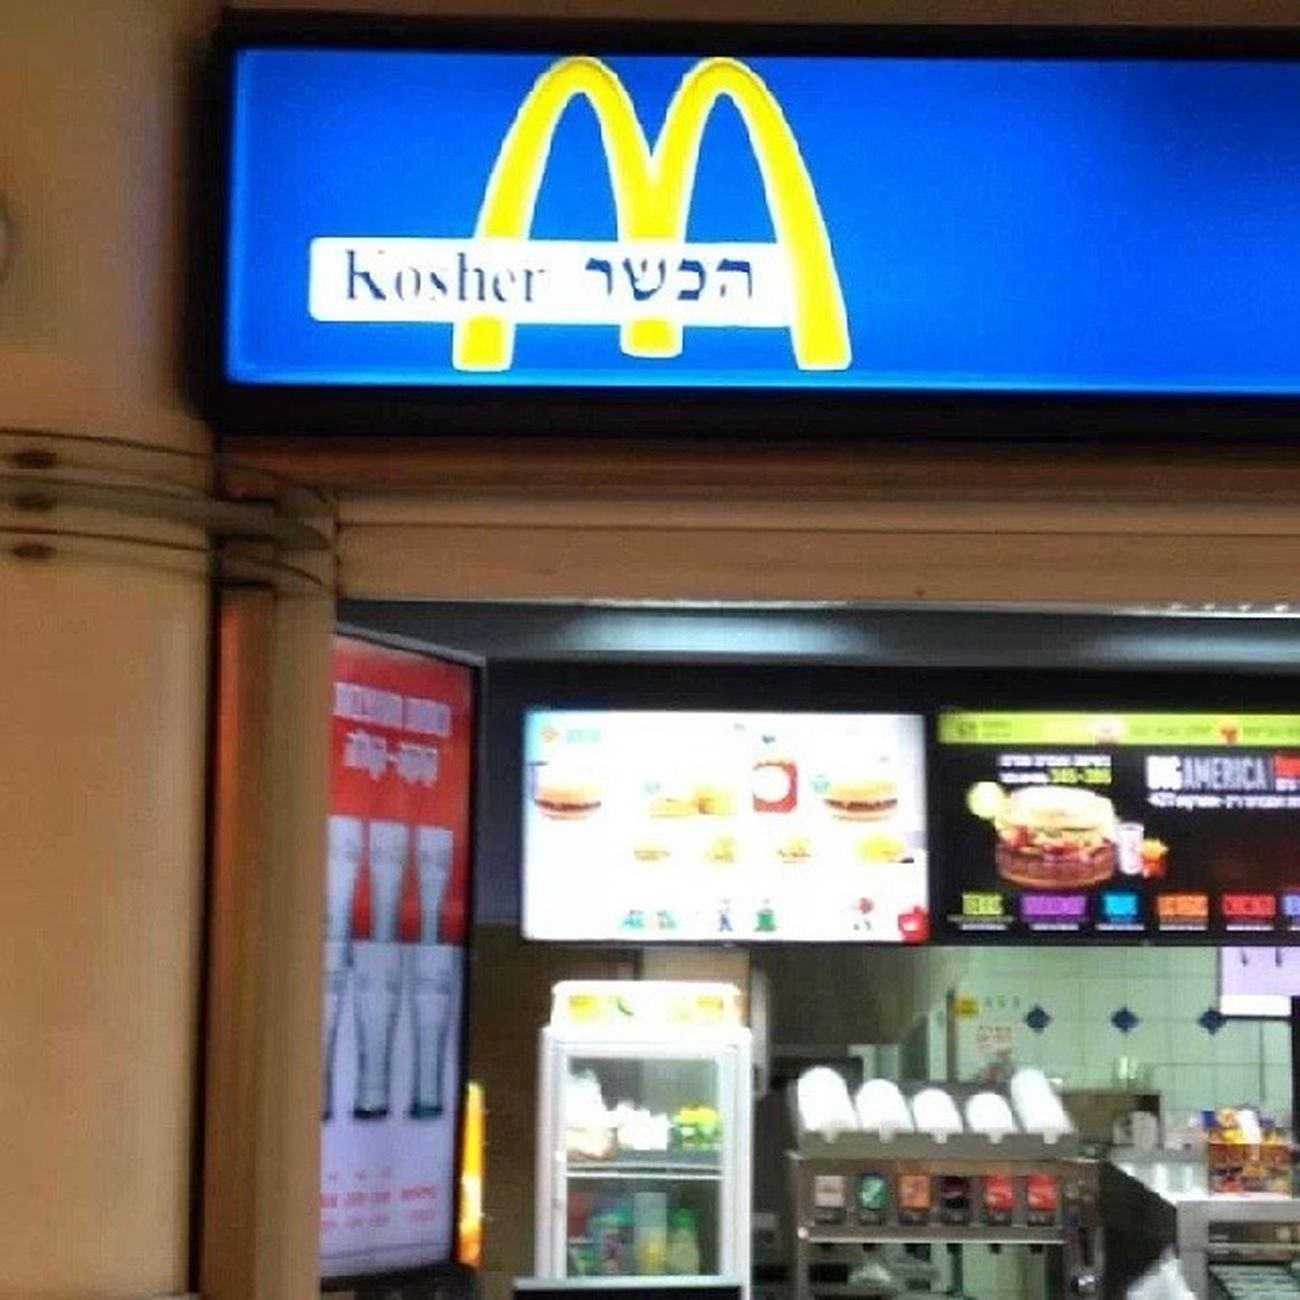 KosherMcdonald 's only in Israel MacDonald 's